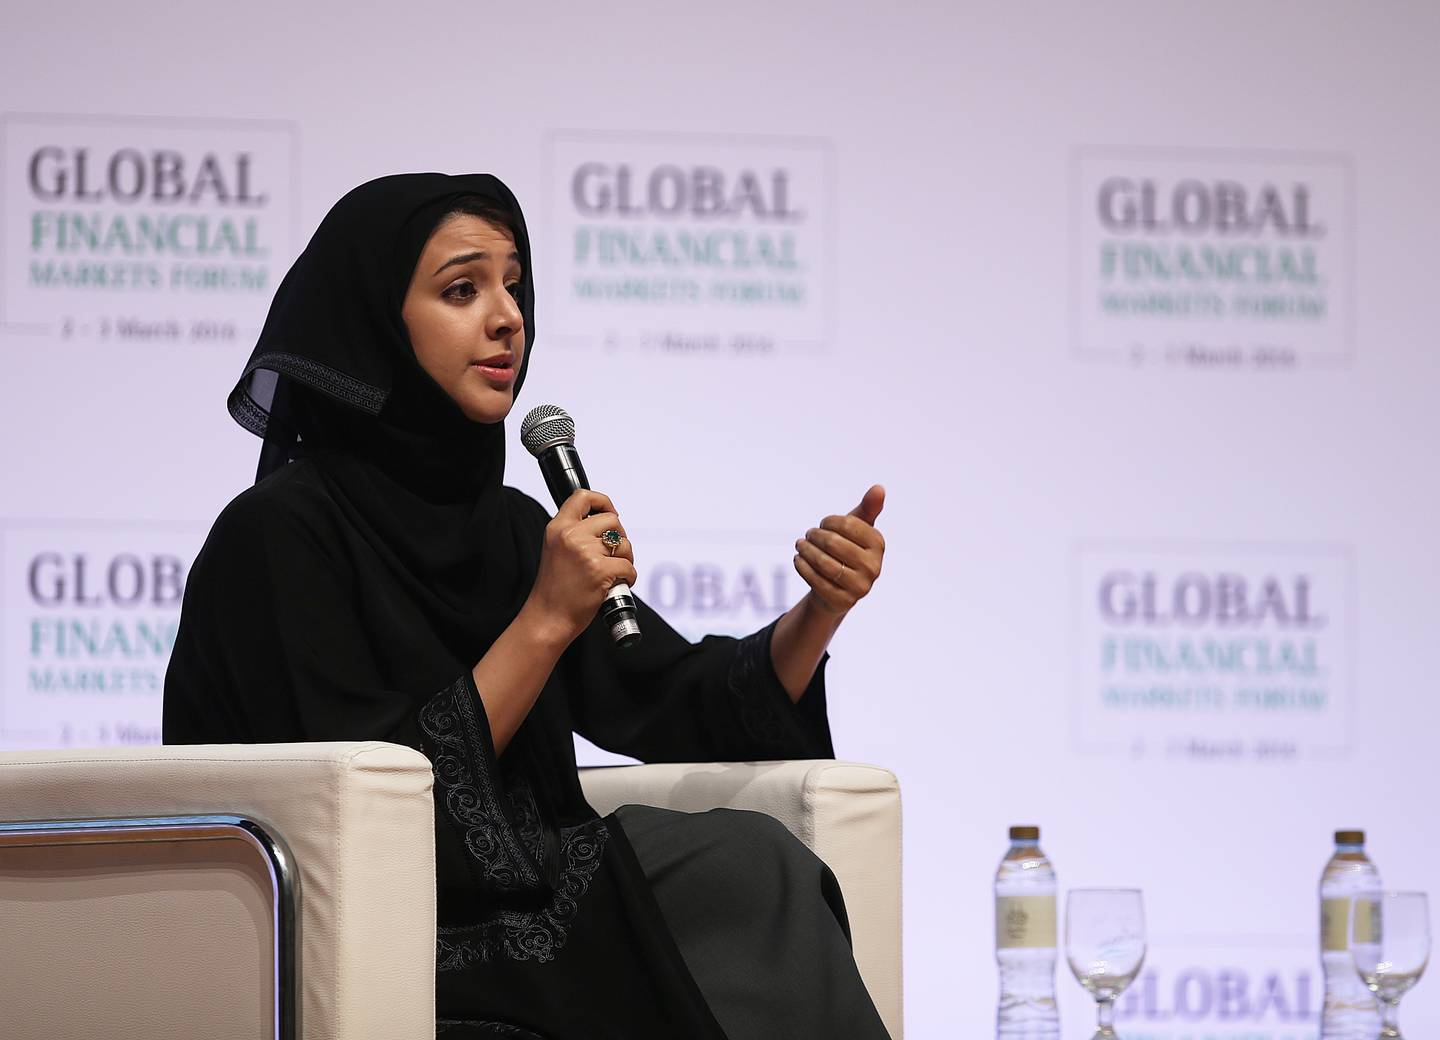 ABU DHABI - UNITED ARAB EMIRATES - 02MAR2016 - Reem al Hashimy, UAE minister of state, at the opening of Global Financial Markets Forum yesterday at Emirates Palace hotel in Abu Dhabi. Ravindranath K / The National (to go with Mahmoud story for Business) ID: 73737 *** Local Caption ***  RK0203-NBADForum08.jpg